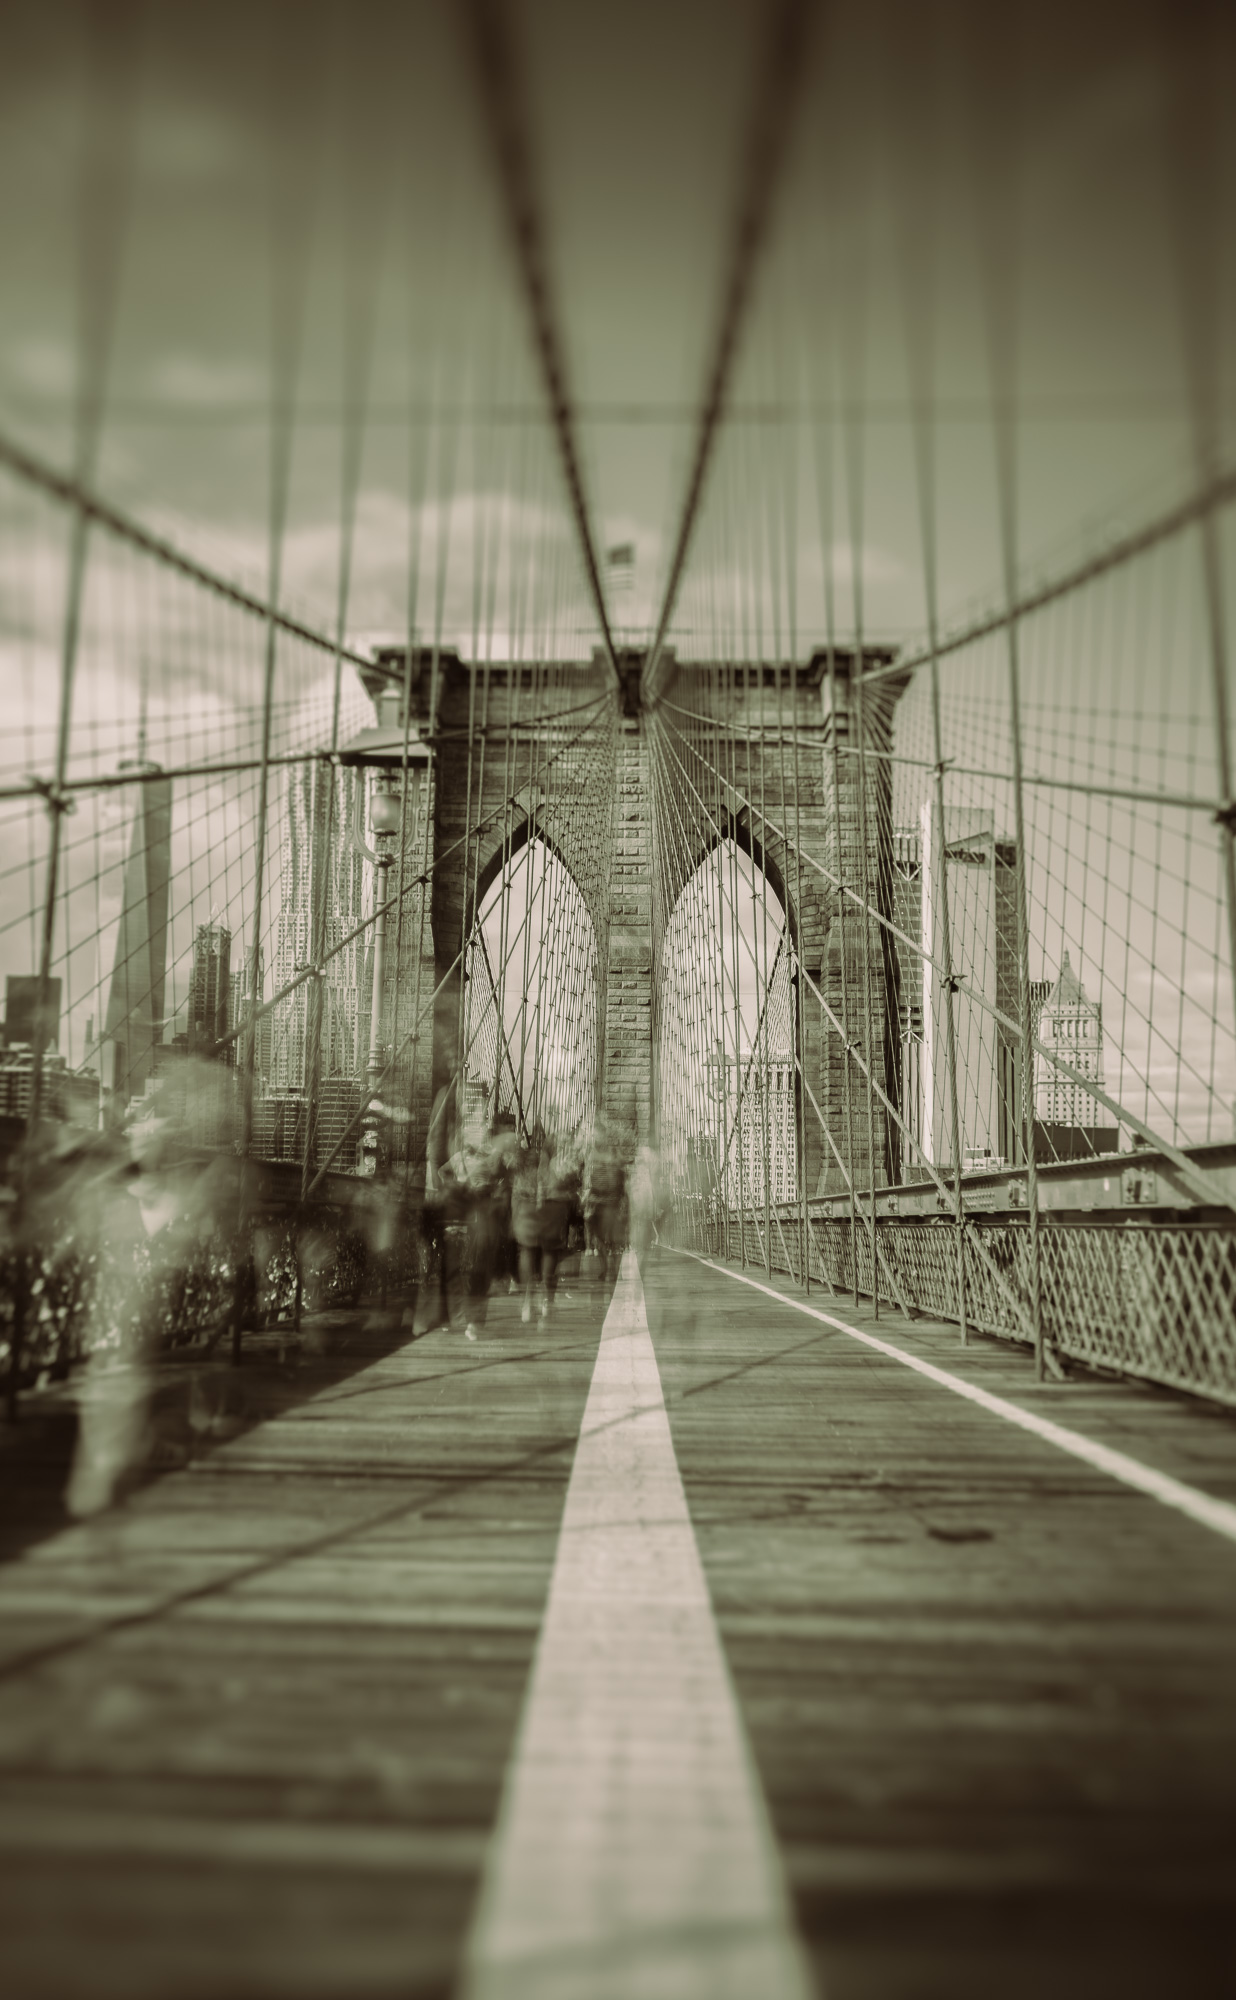 Walking the Brooklyn Bridge in Monochrome